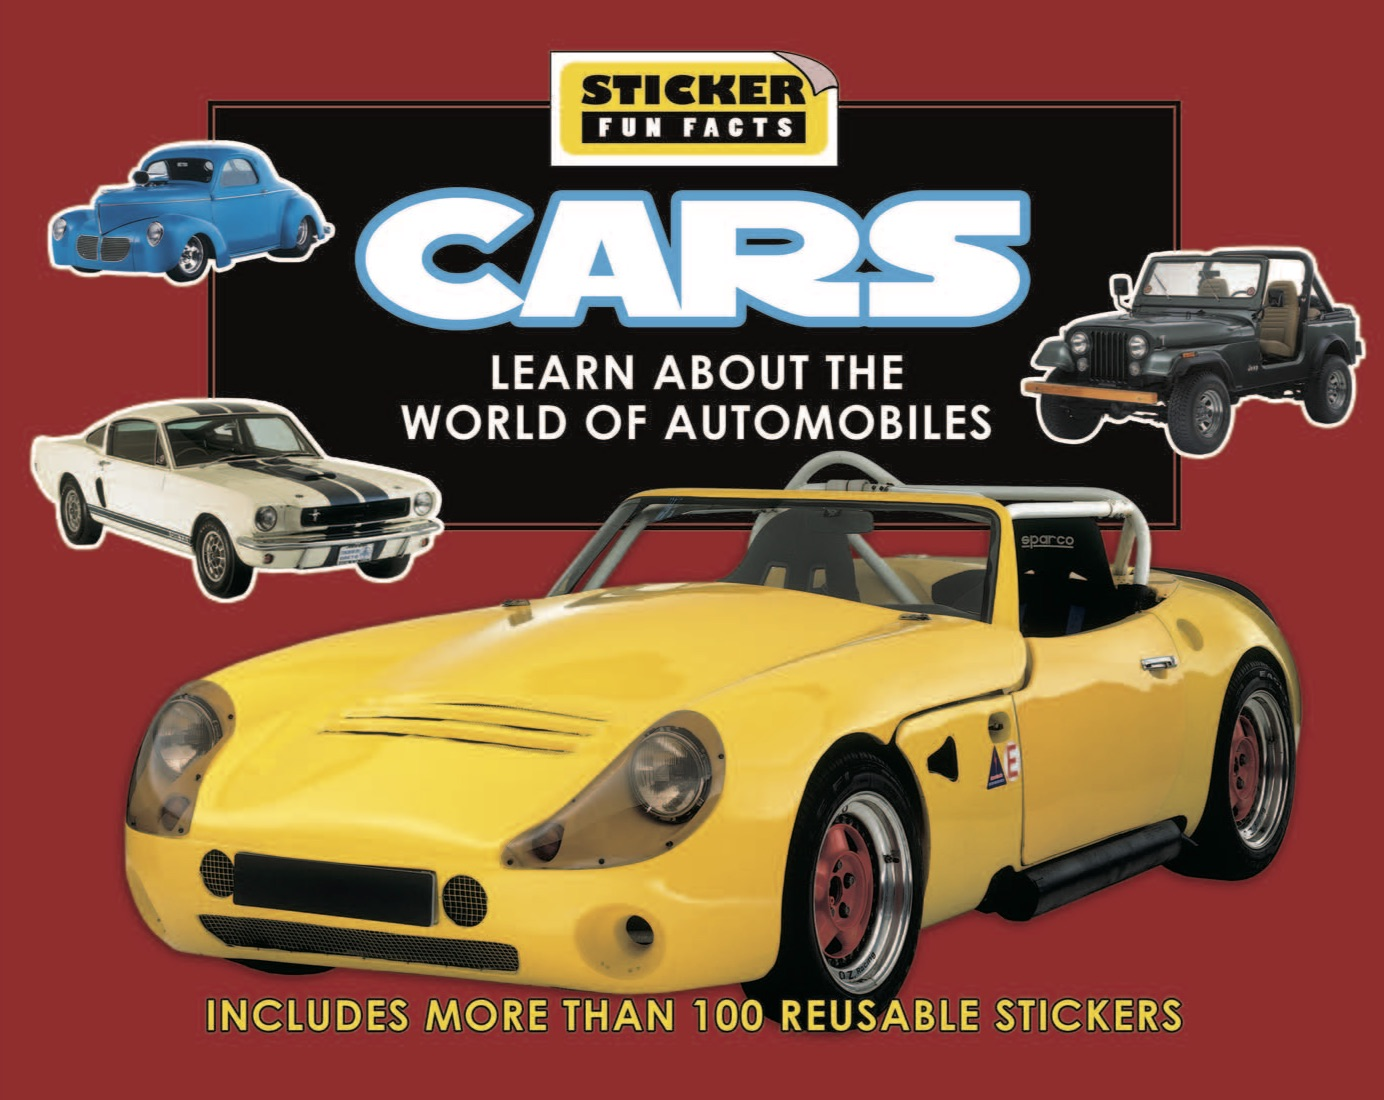 Sticker Fun Facts: Cars